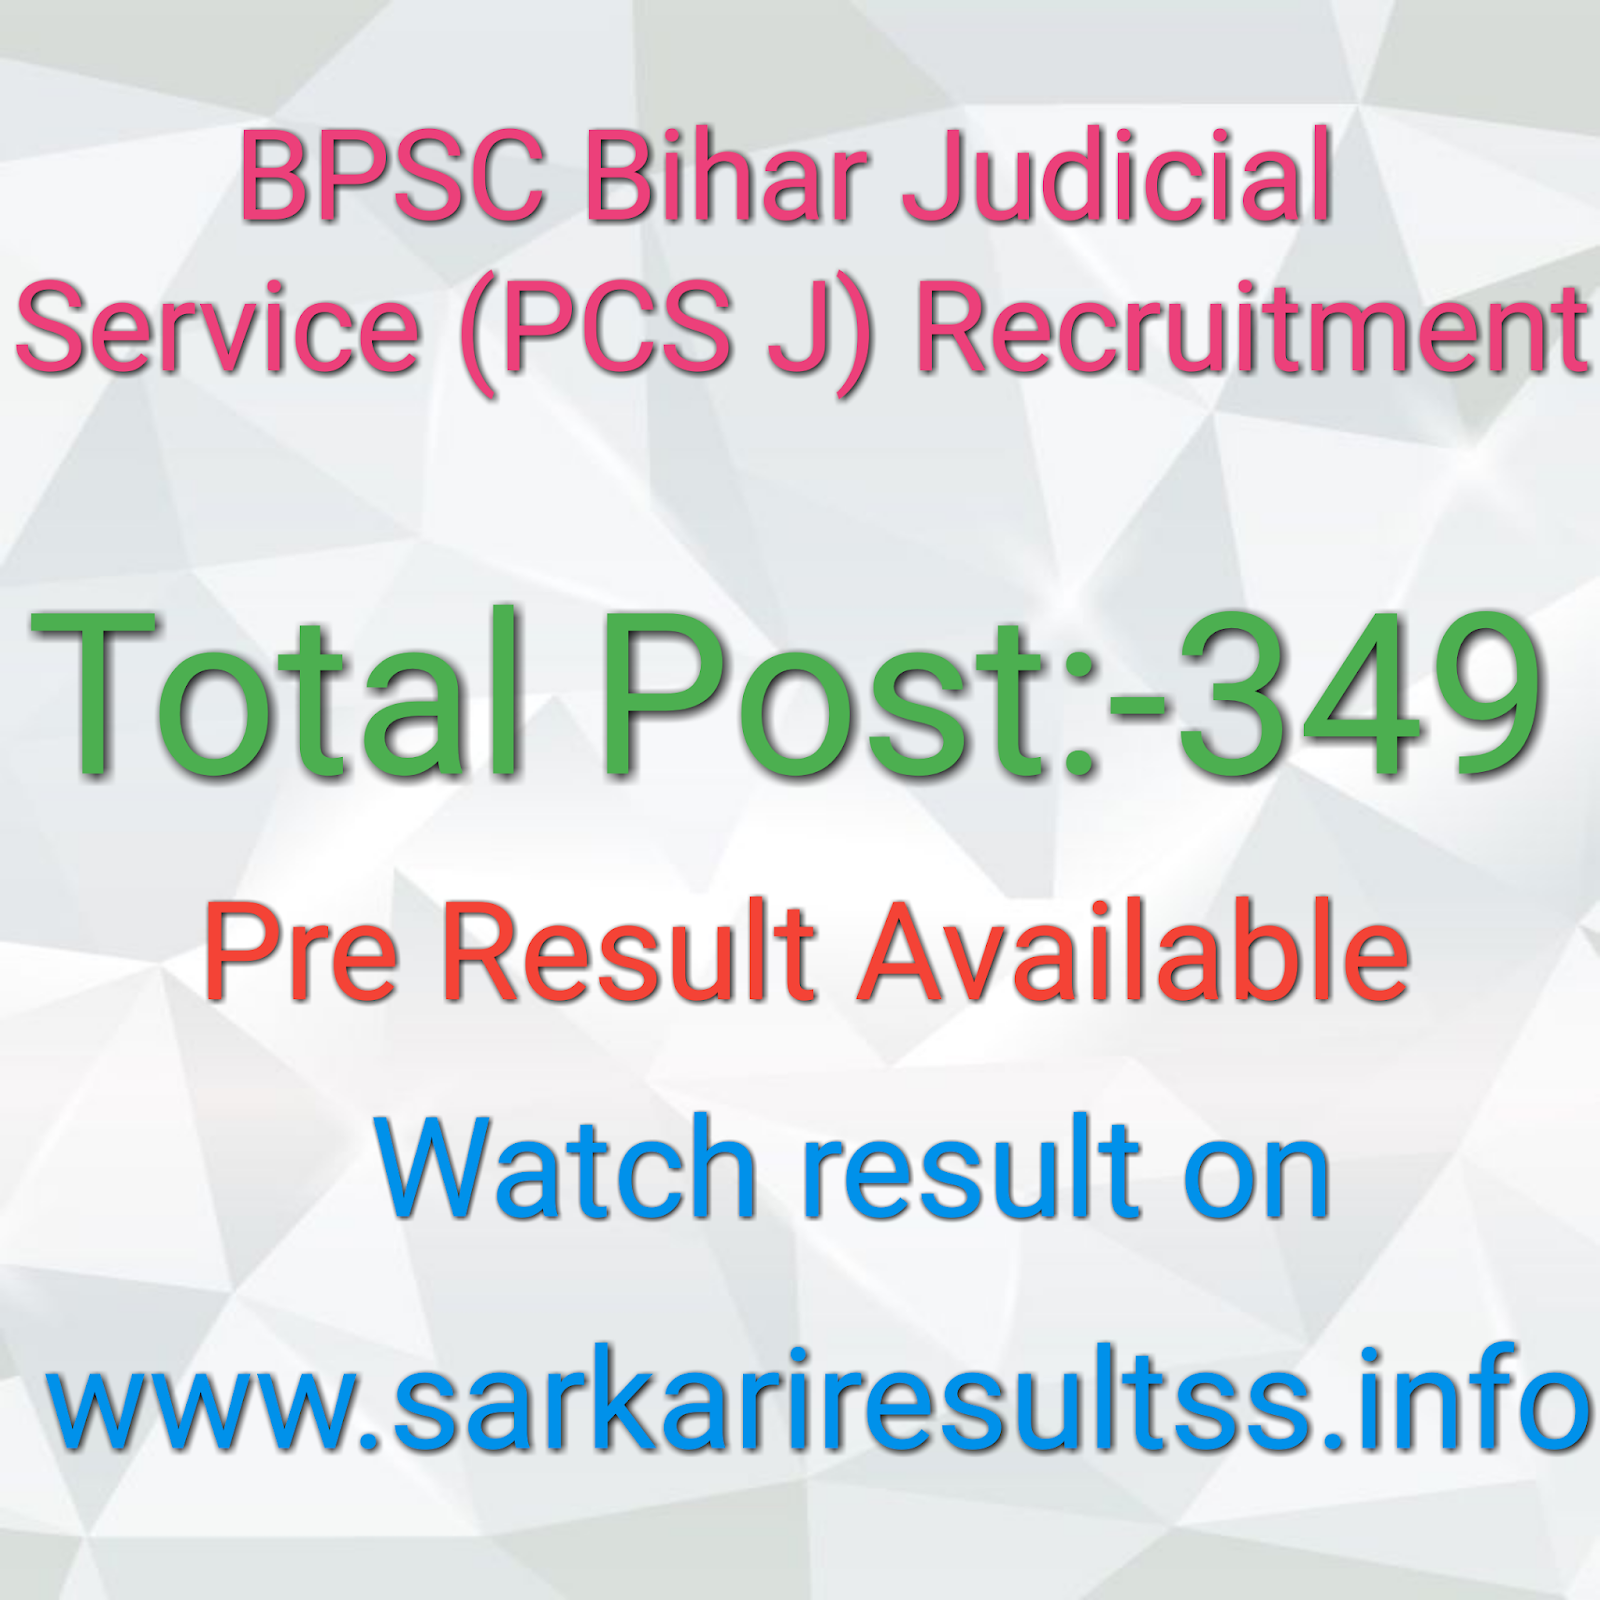 BPSC) Bihar Judicial Service (PCS J) Recruitment Latest job